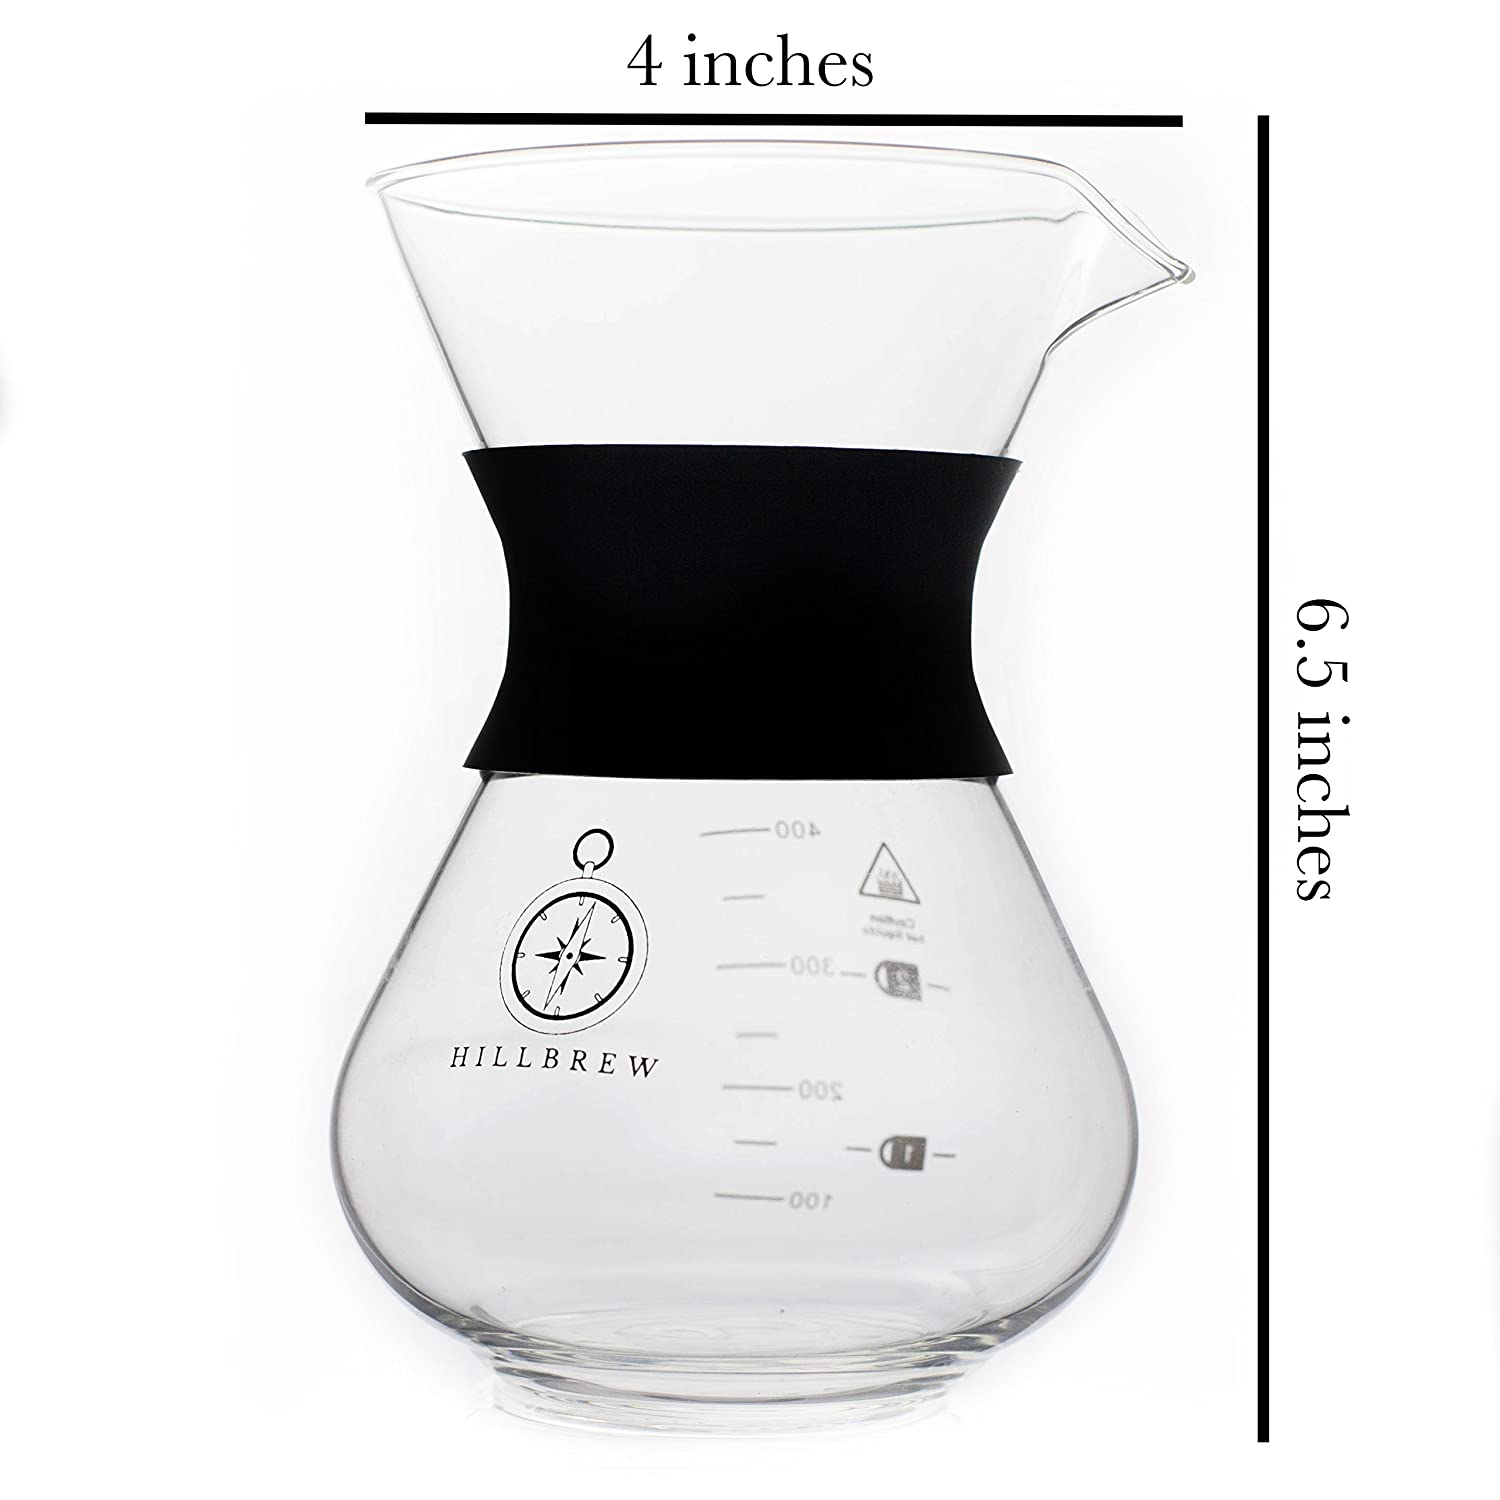 Durable Glass Carafe 1-2 Cup Eco-Friendly 400 ML Pour Over Drip Coffee Maker 13.5 OZ Paperless Stainless Steel Filter Reusable Heat Resistant Silicone Cuff Hillbrew Coffee /& Tea Manual Portable